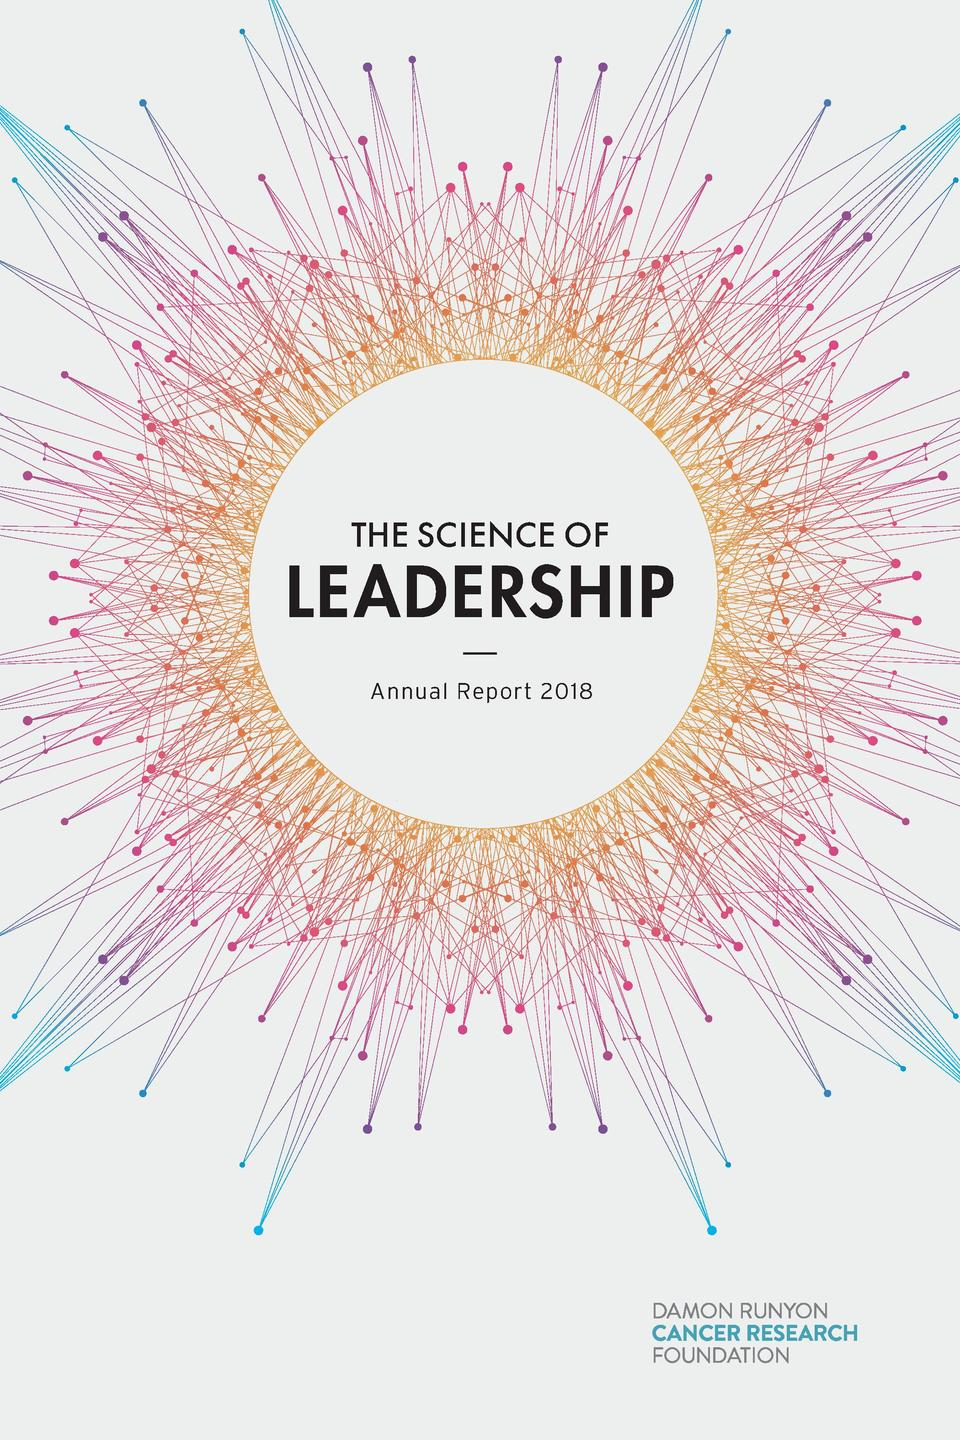 THE SCIENCE OF  LEADERSHIP Annual Report 2018